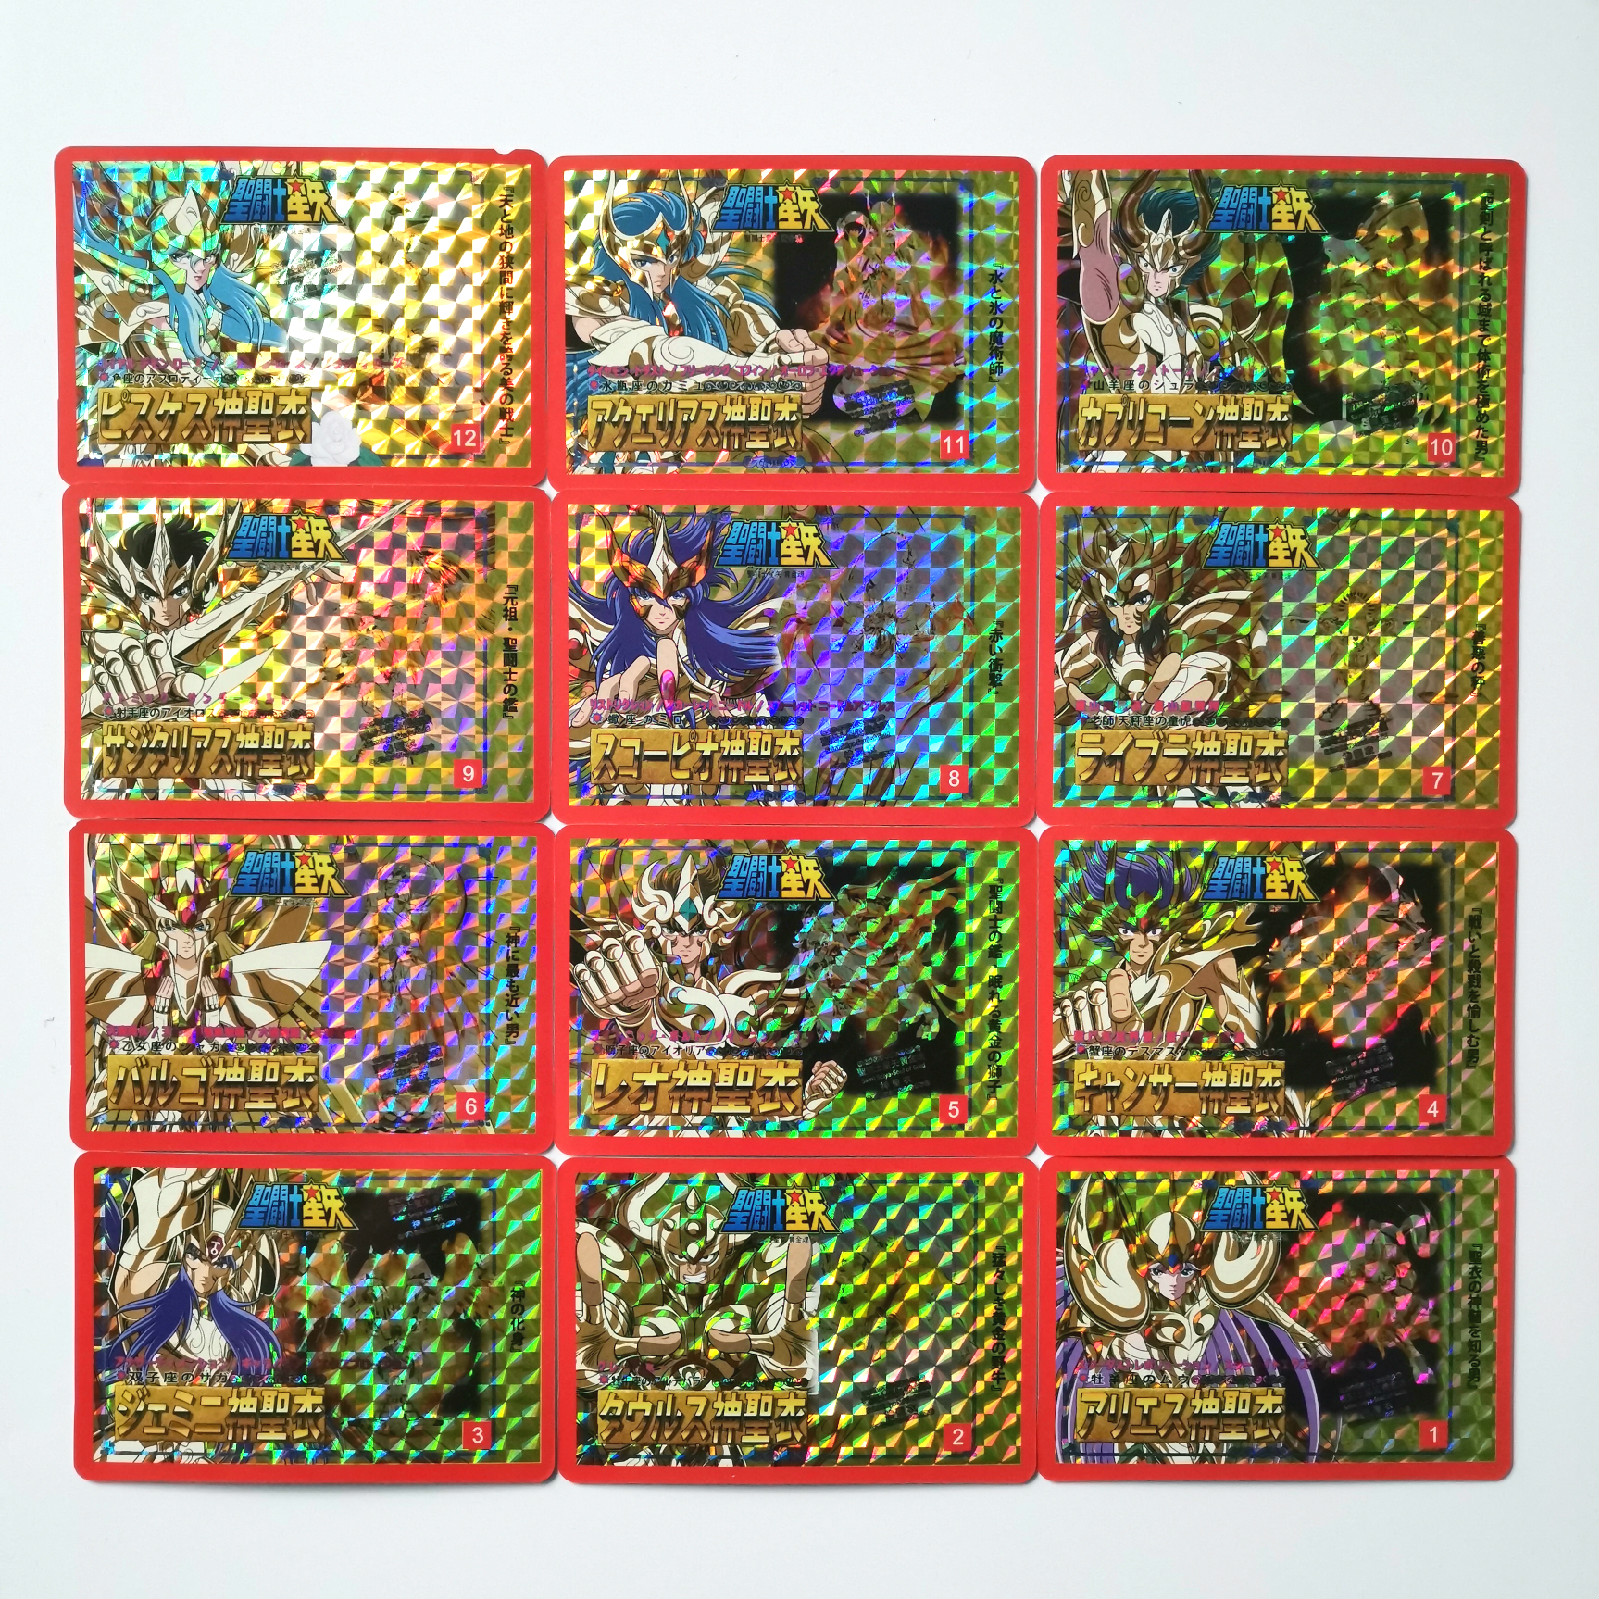 14pcs/set Saint Seiya Golden Soul Cloth Myth Toys Hobbies Hobby Collectibles Game Collection Anime Cards